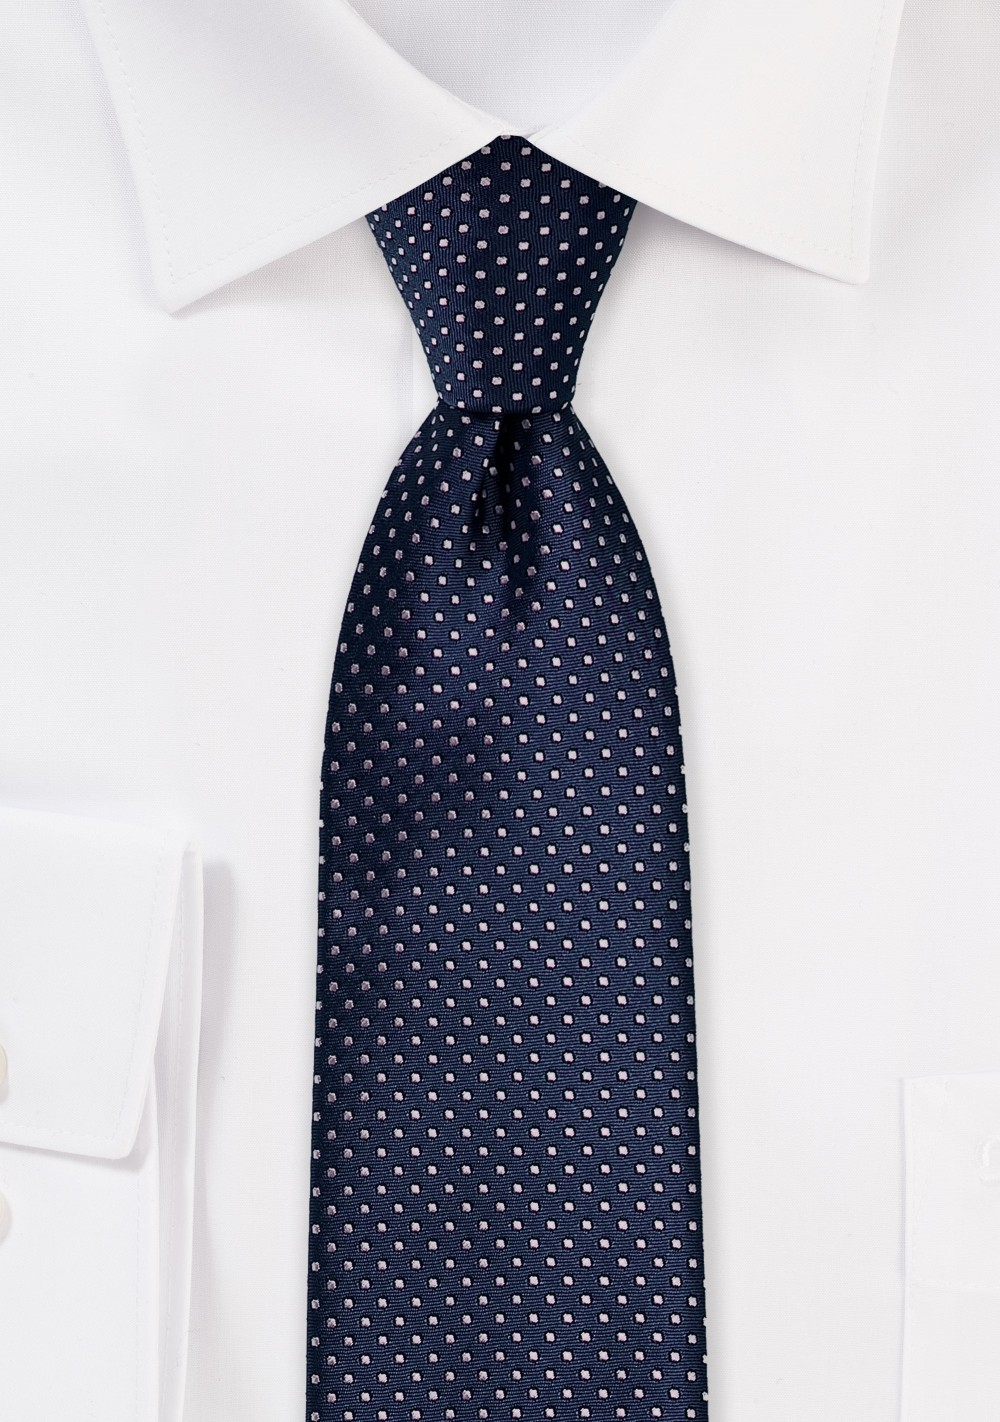 Dark Navy Skinny Tie with Silver Pin Dots